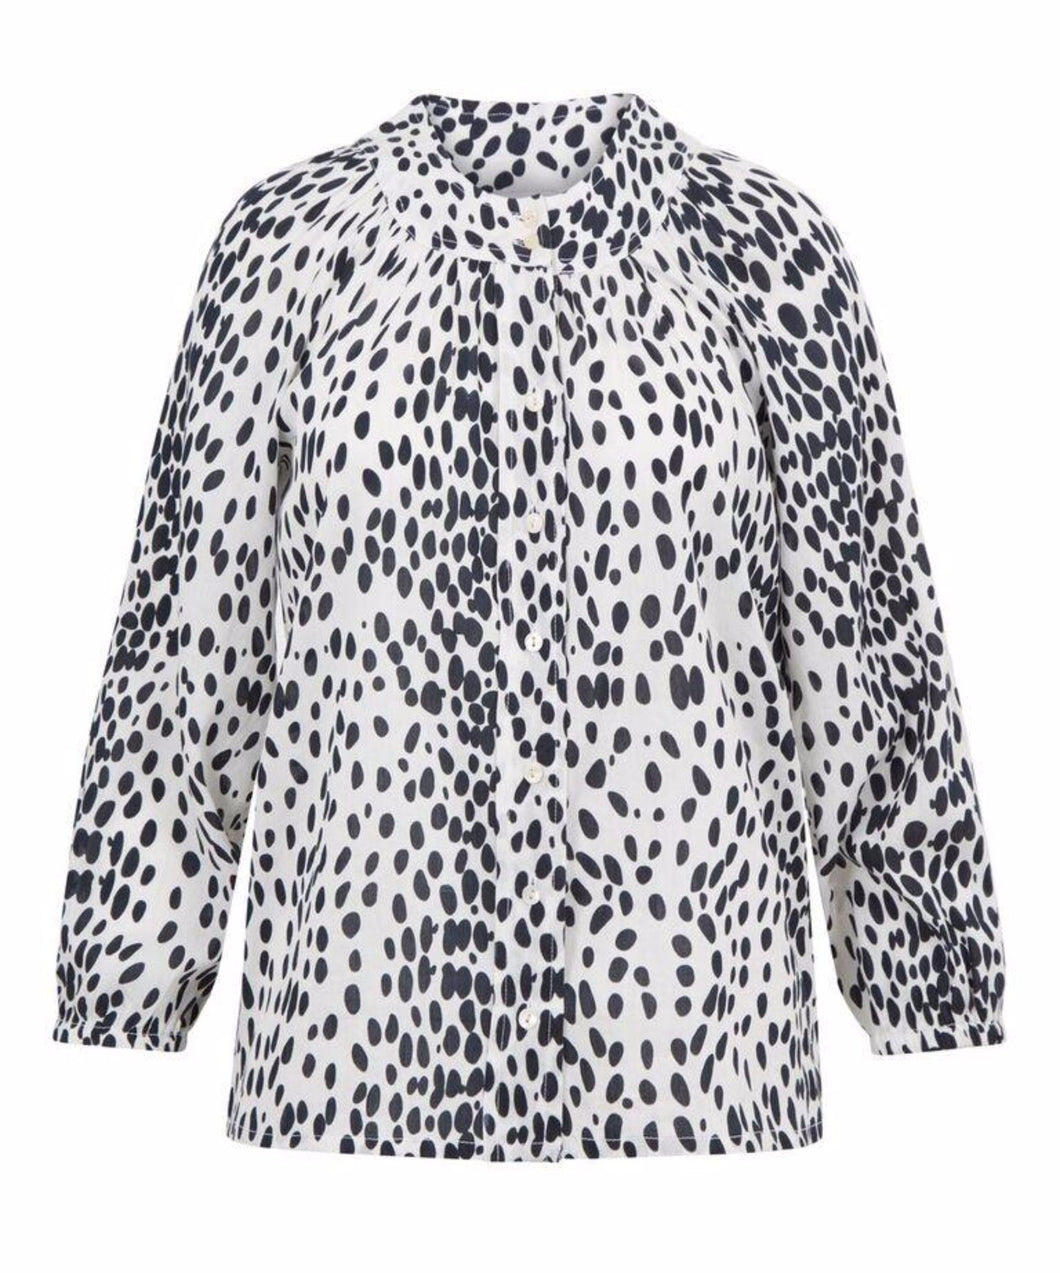 Signature Melanie Press blEve blouse in black & white leopard optic